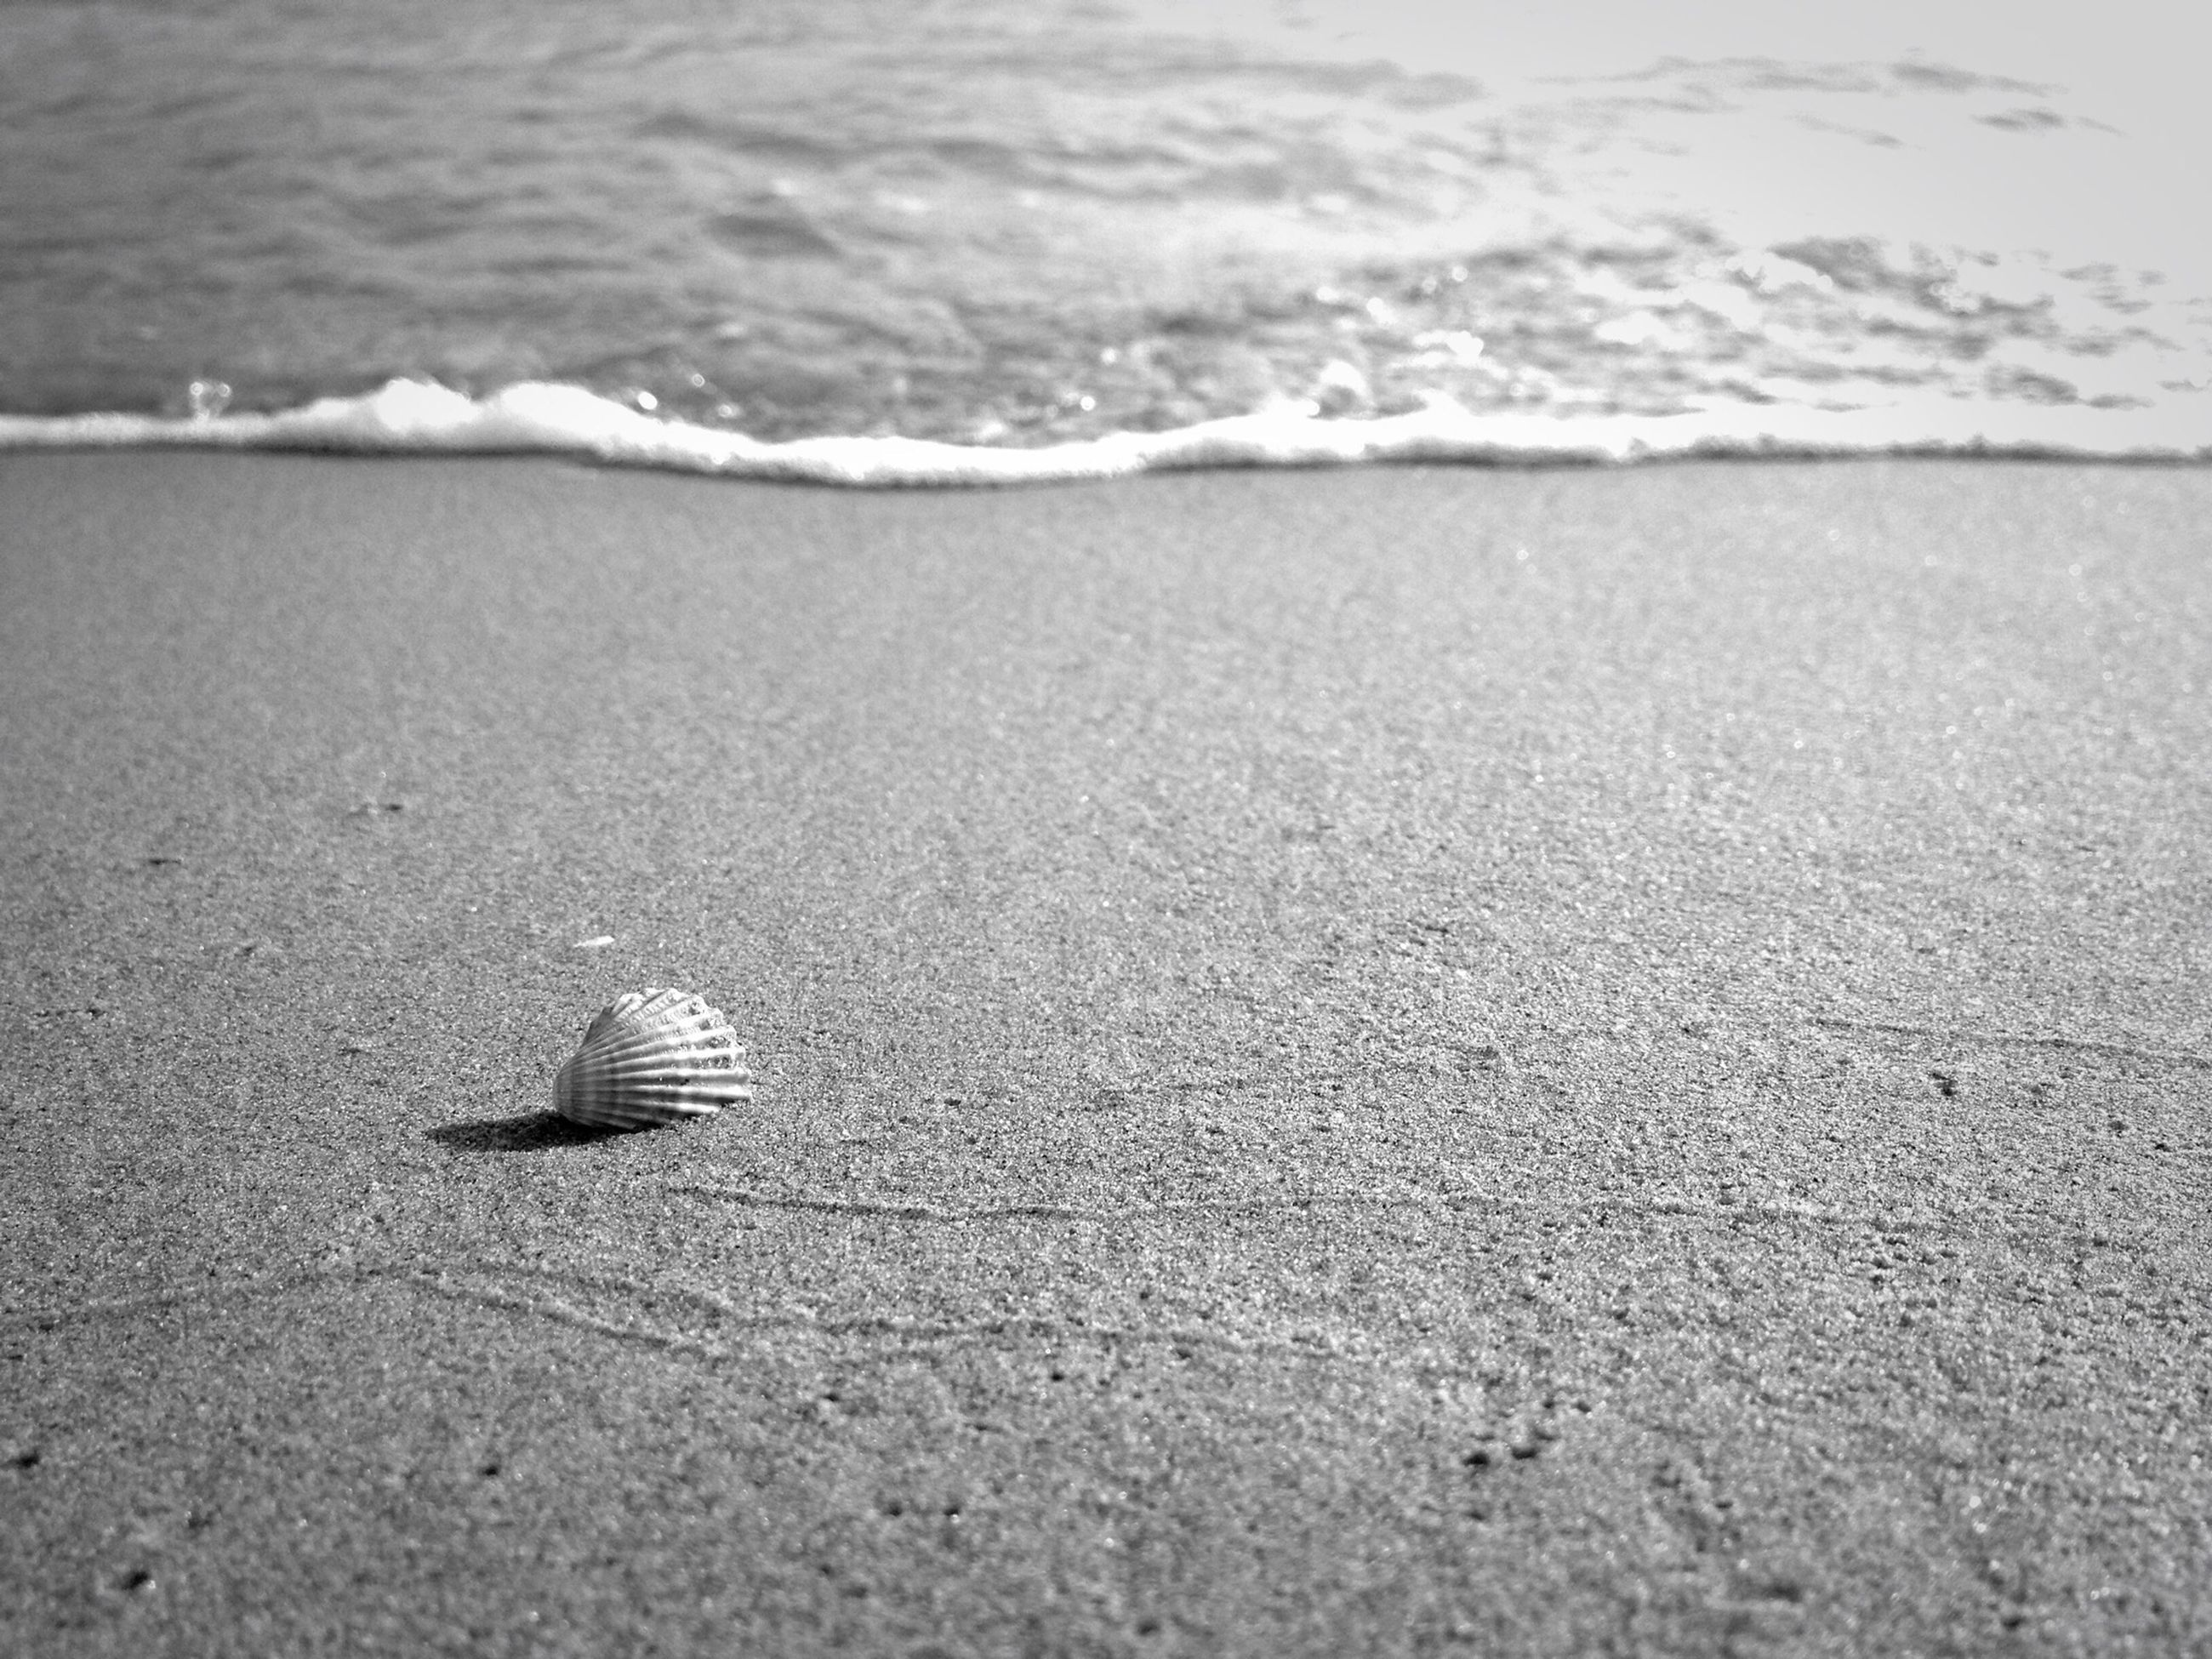 beach, sand, sea, water, shore, tranquility, nature, horizon over water, tranquil scene, beauty in nature, day, wave, outdoors, scenics, high angle view, no people, footprint, coastline, surf, sandy